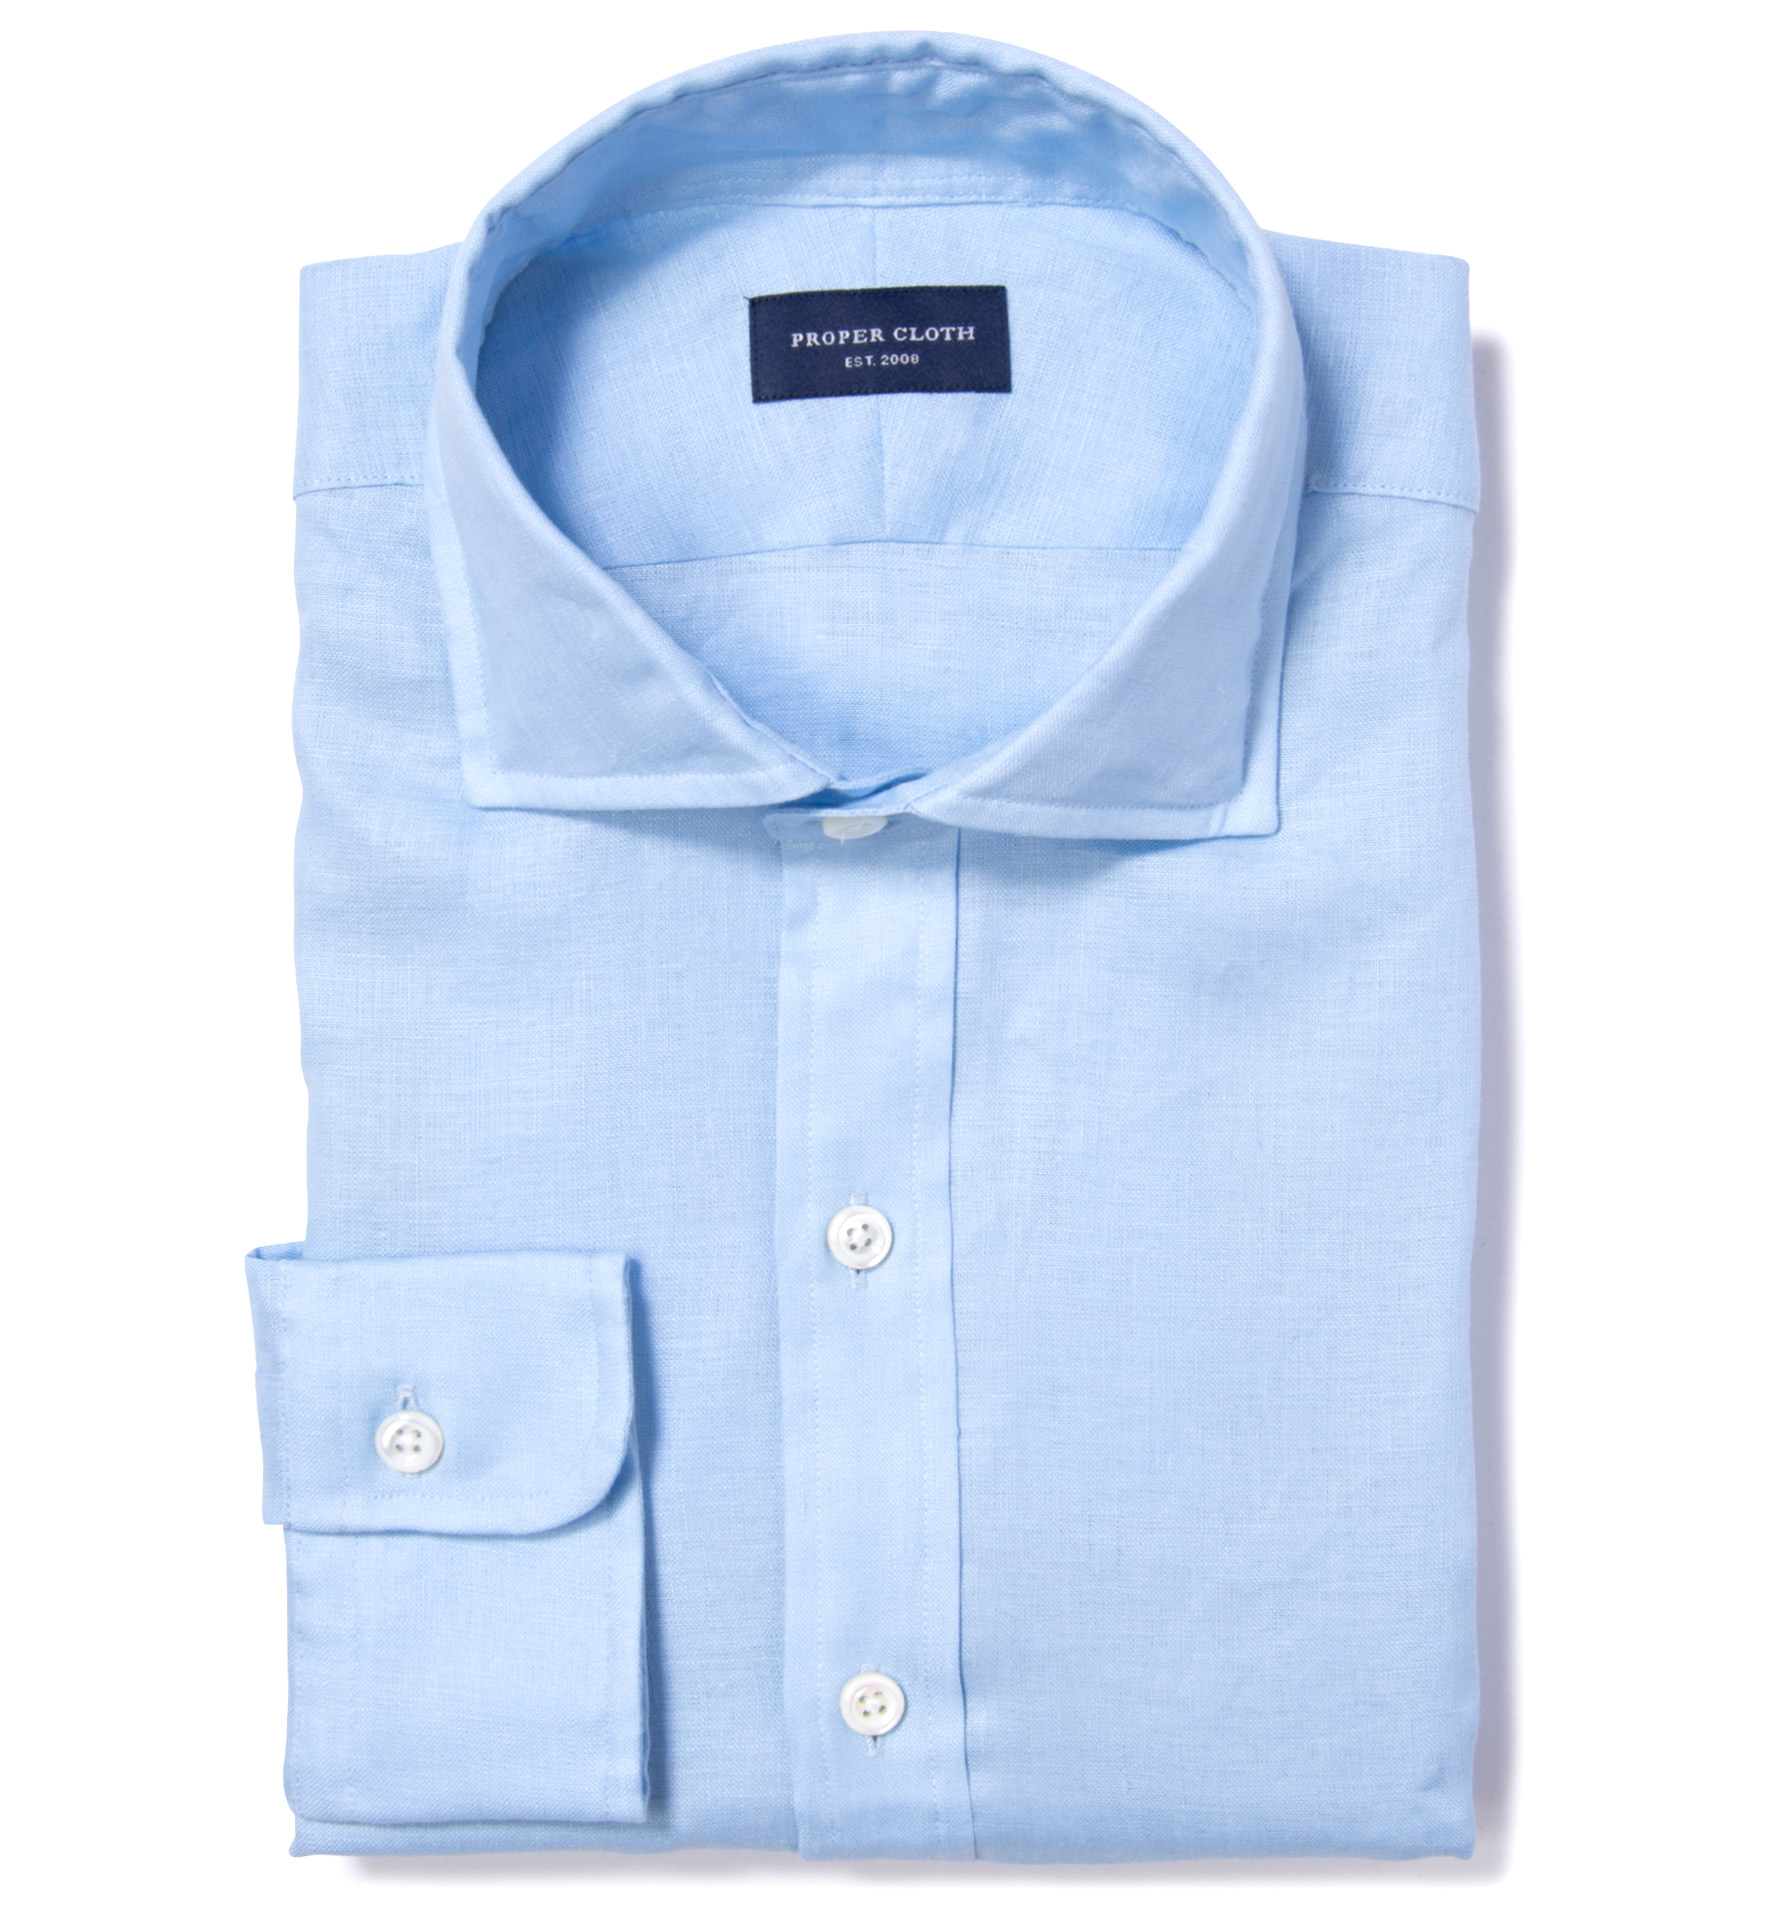 Mens Linen Shirts. When deciding on selections of shirts to enhance a wardrobe, one of the best solutions is a variety of men's linen bestyload7od.cf only are linen shirts extremely handsome, they are also shirts that wear well and are meant to last.